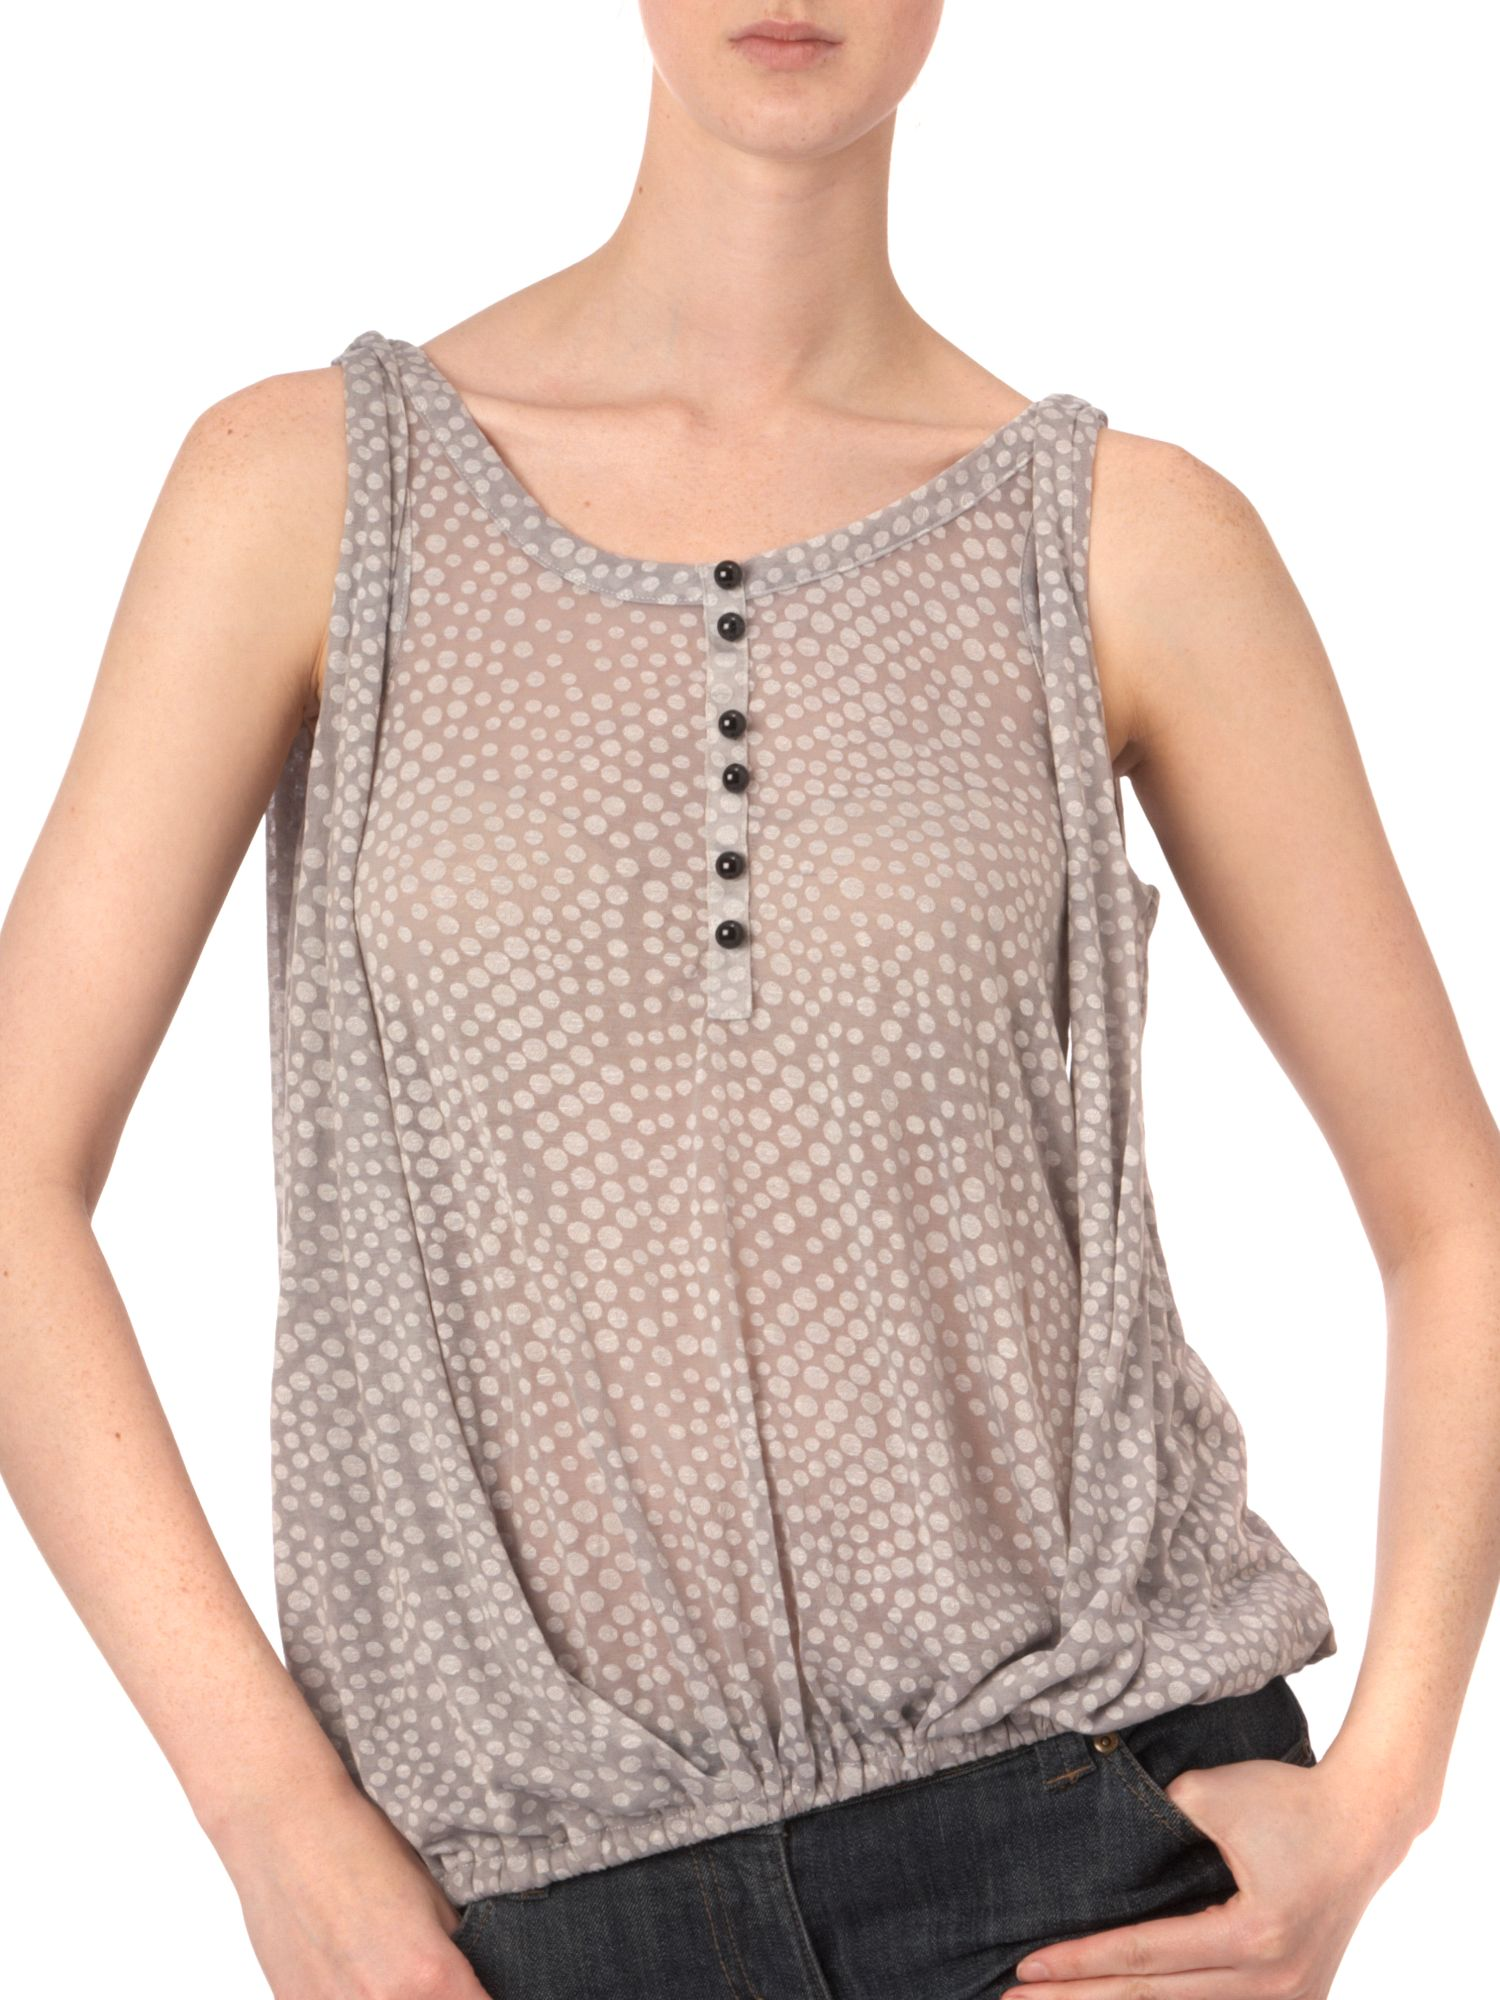 Vero Moda Dot top blouse product image